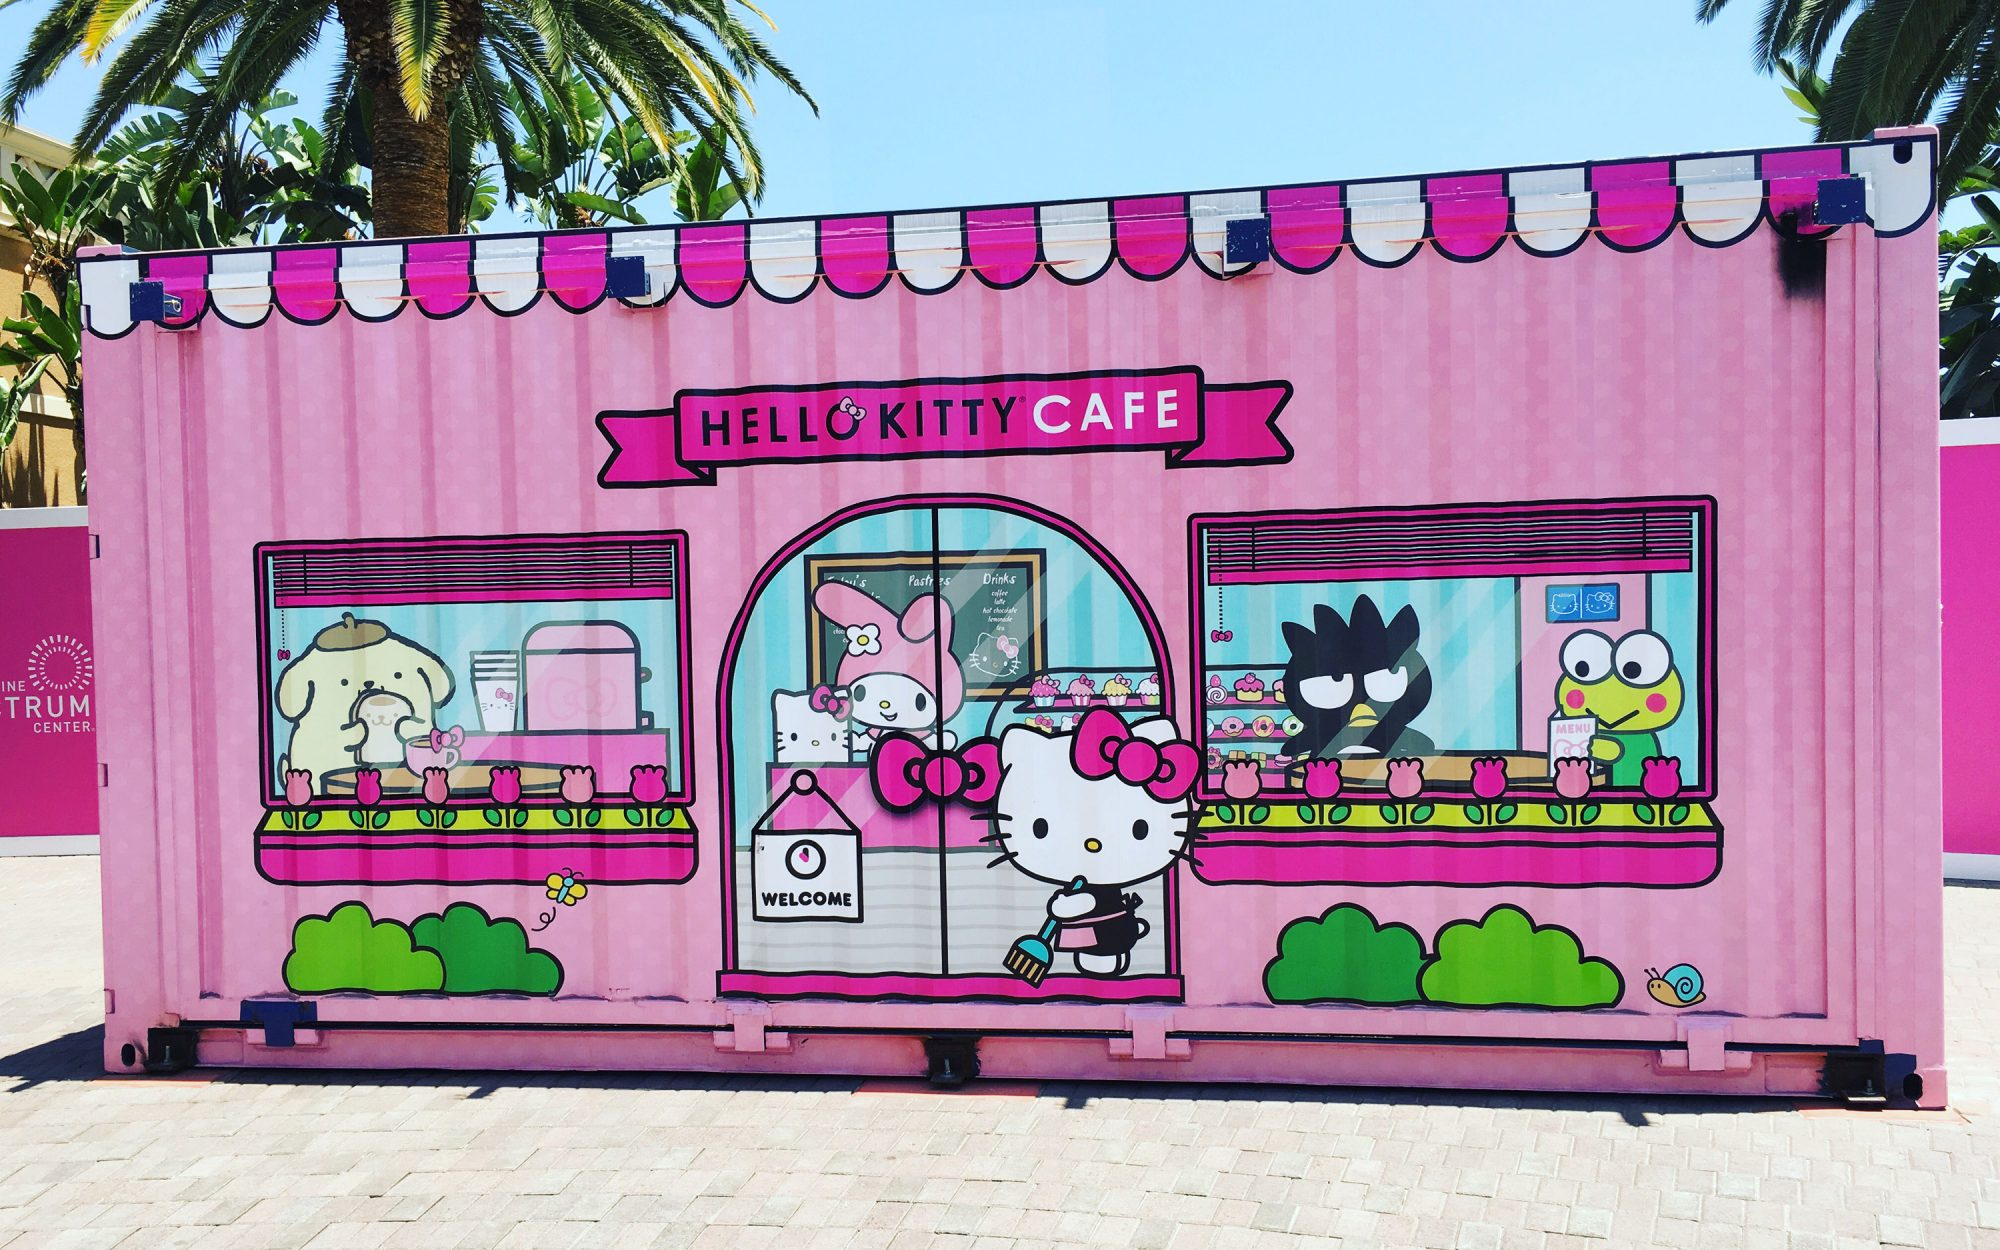 There's a New Hello Kitty Cafe in California